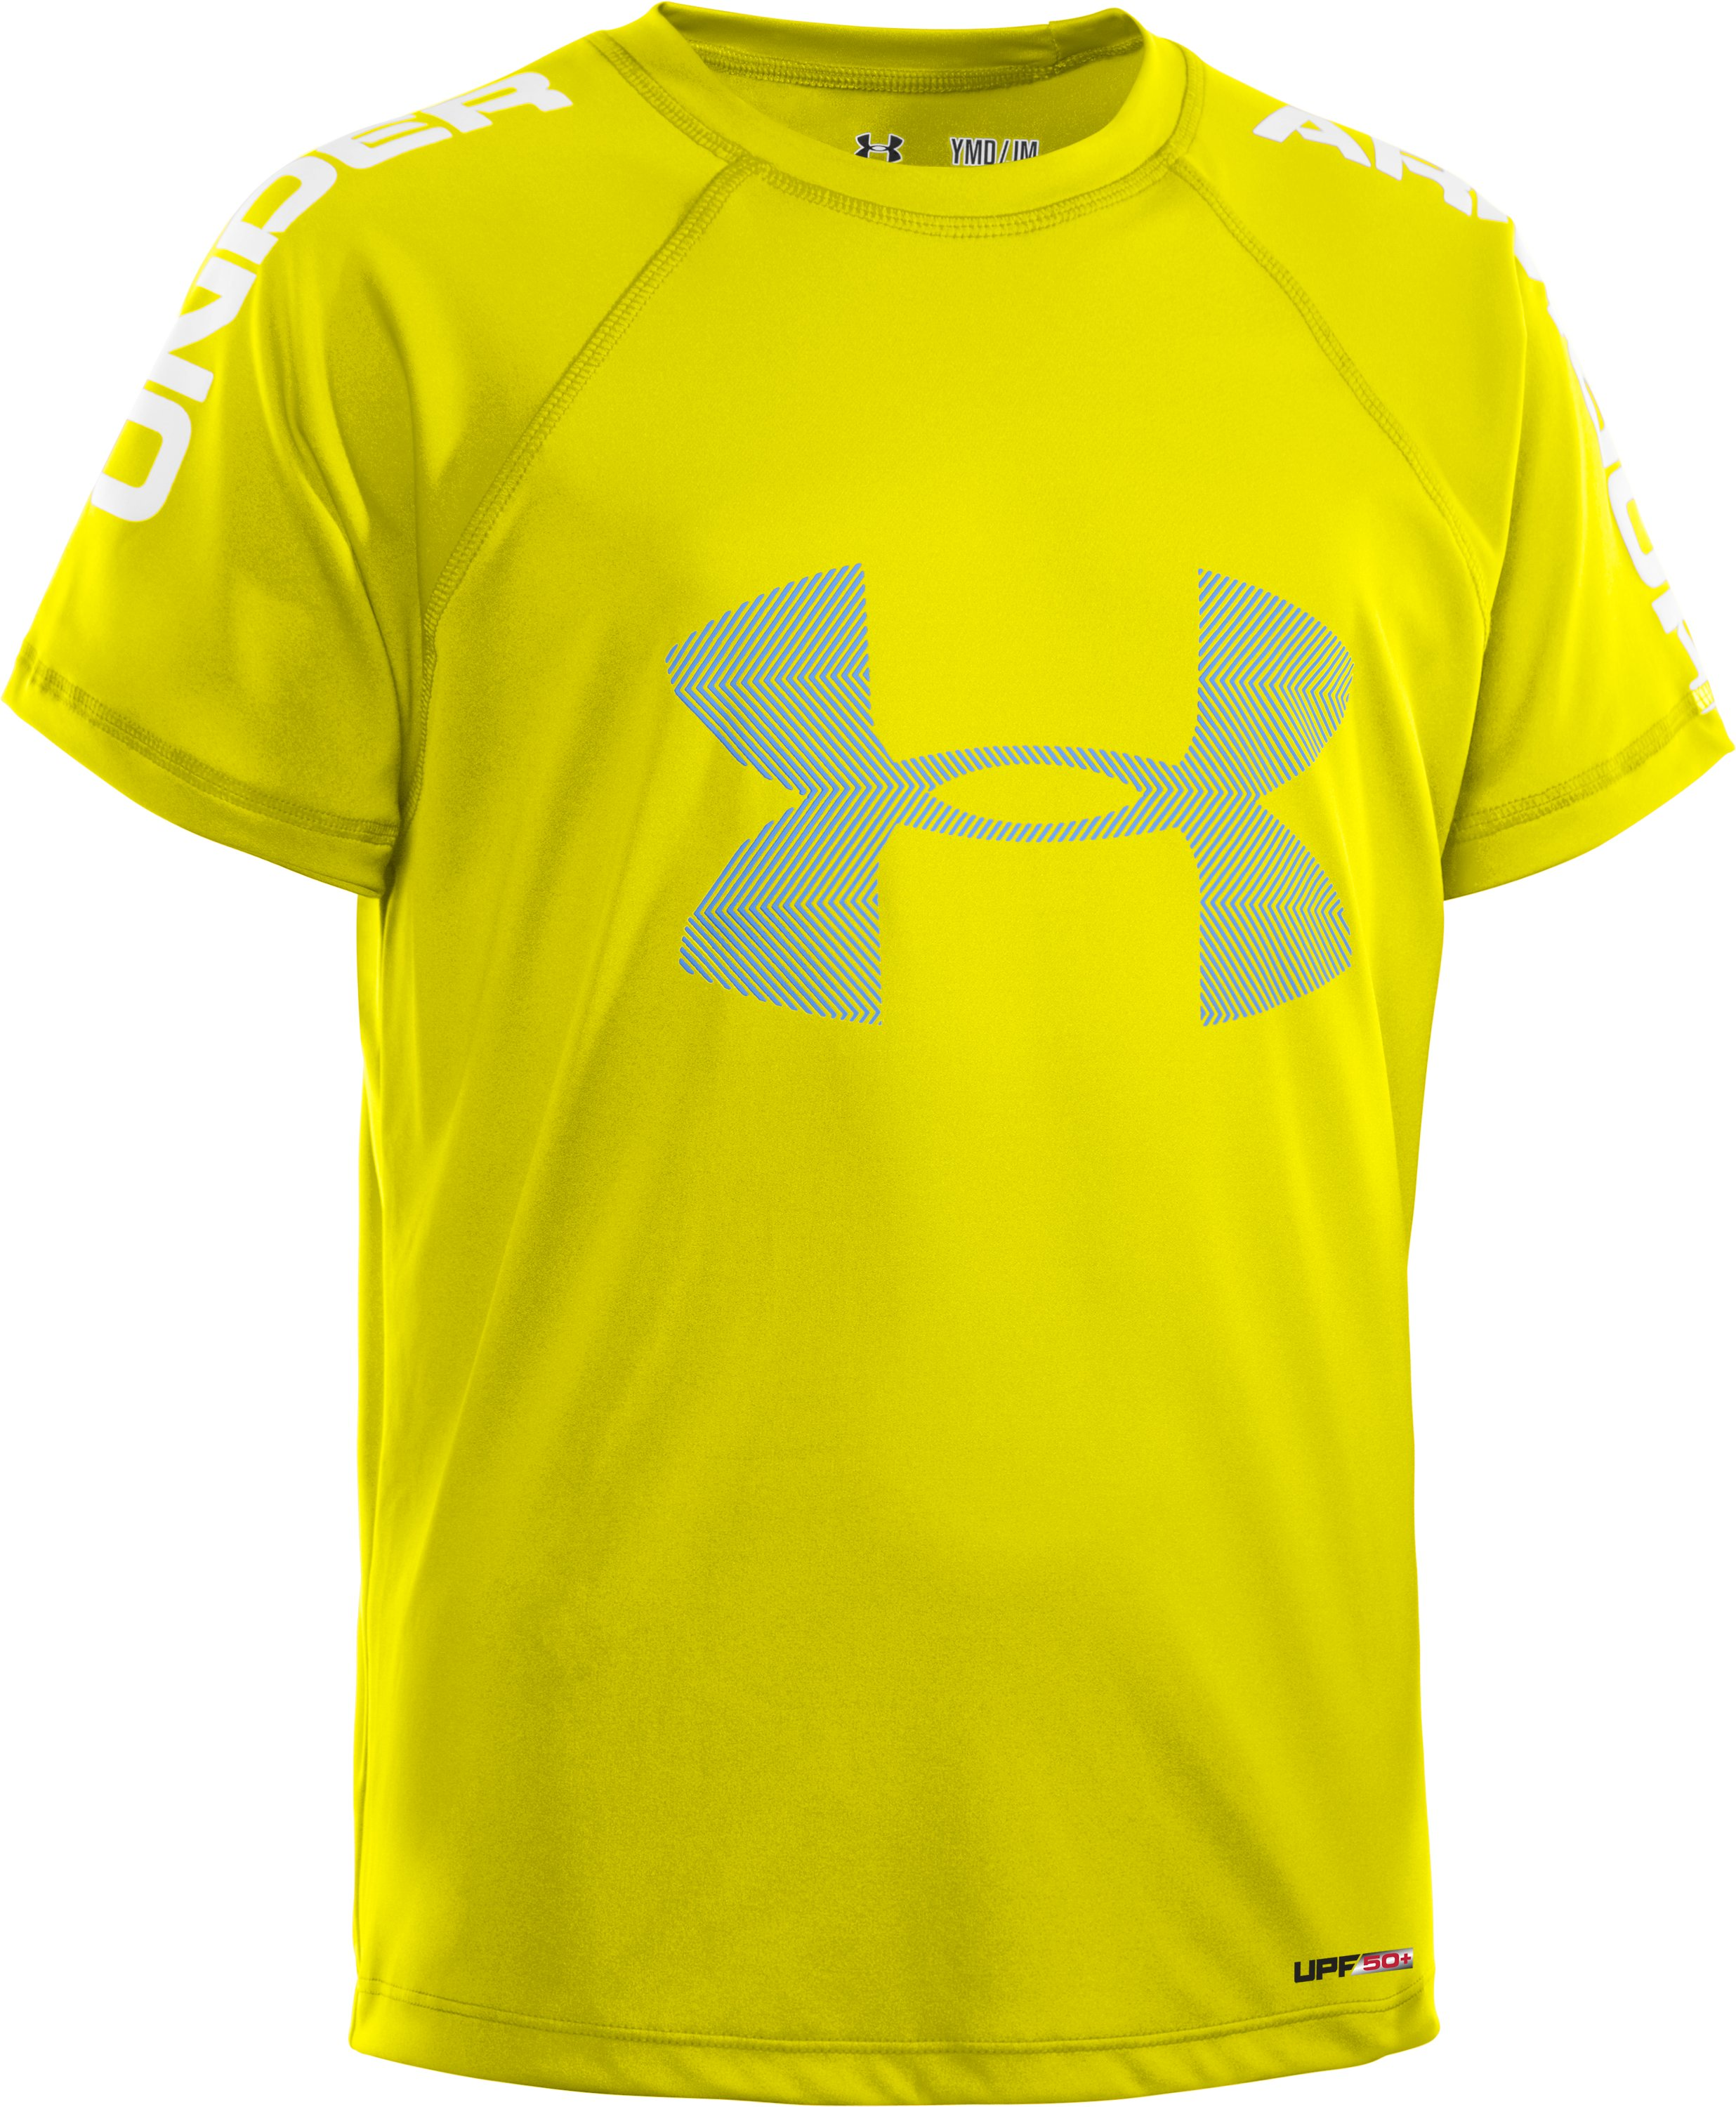 Boys' UA Ripping Sun-Activated Short Sleeve, Sunbleached